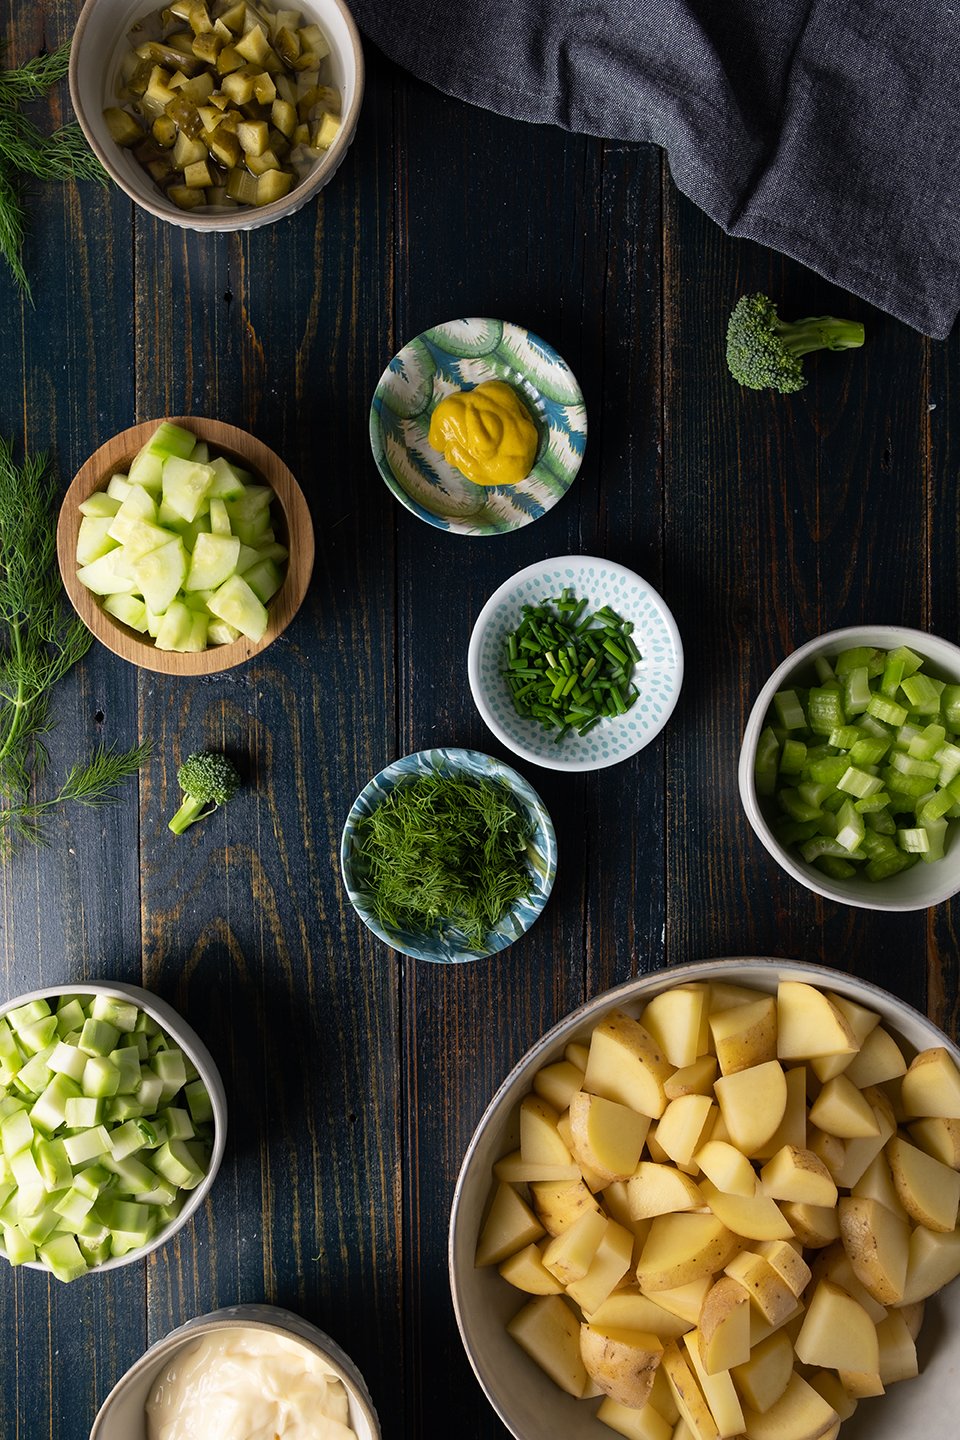 ingredients for potato and broccoli salad in decorative bowls of various sizes